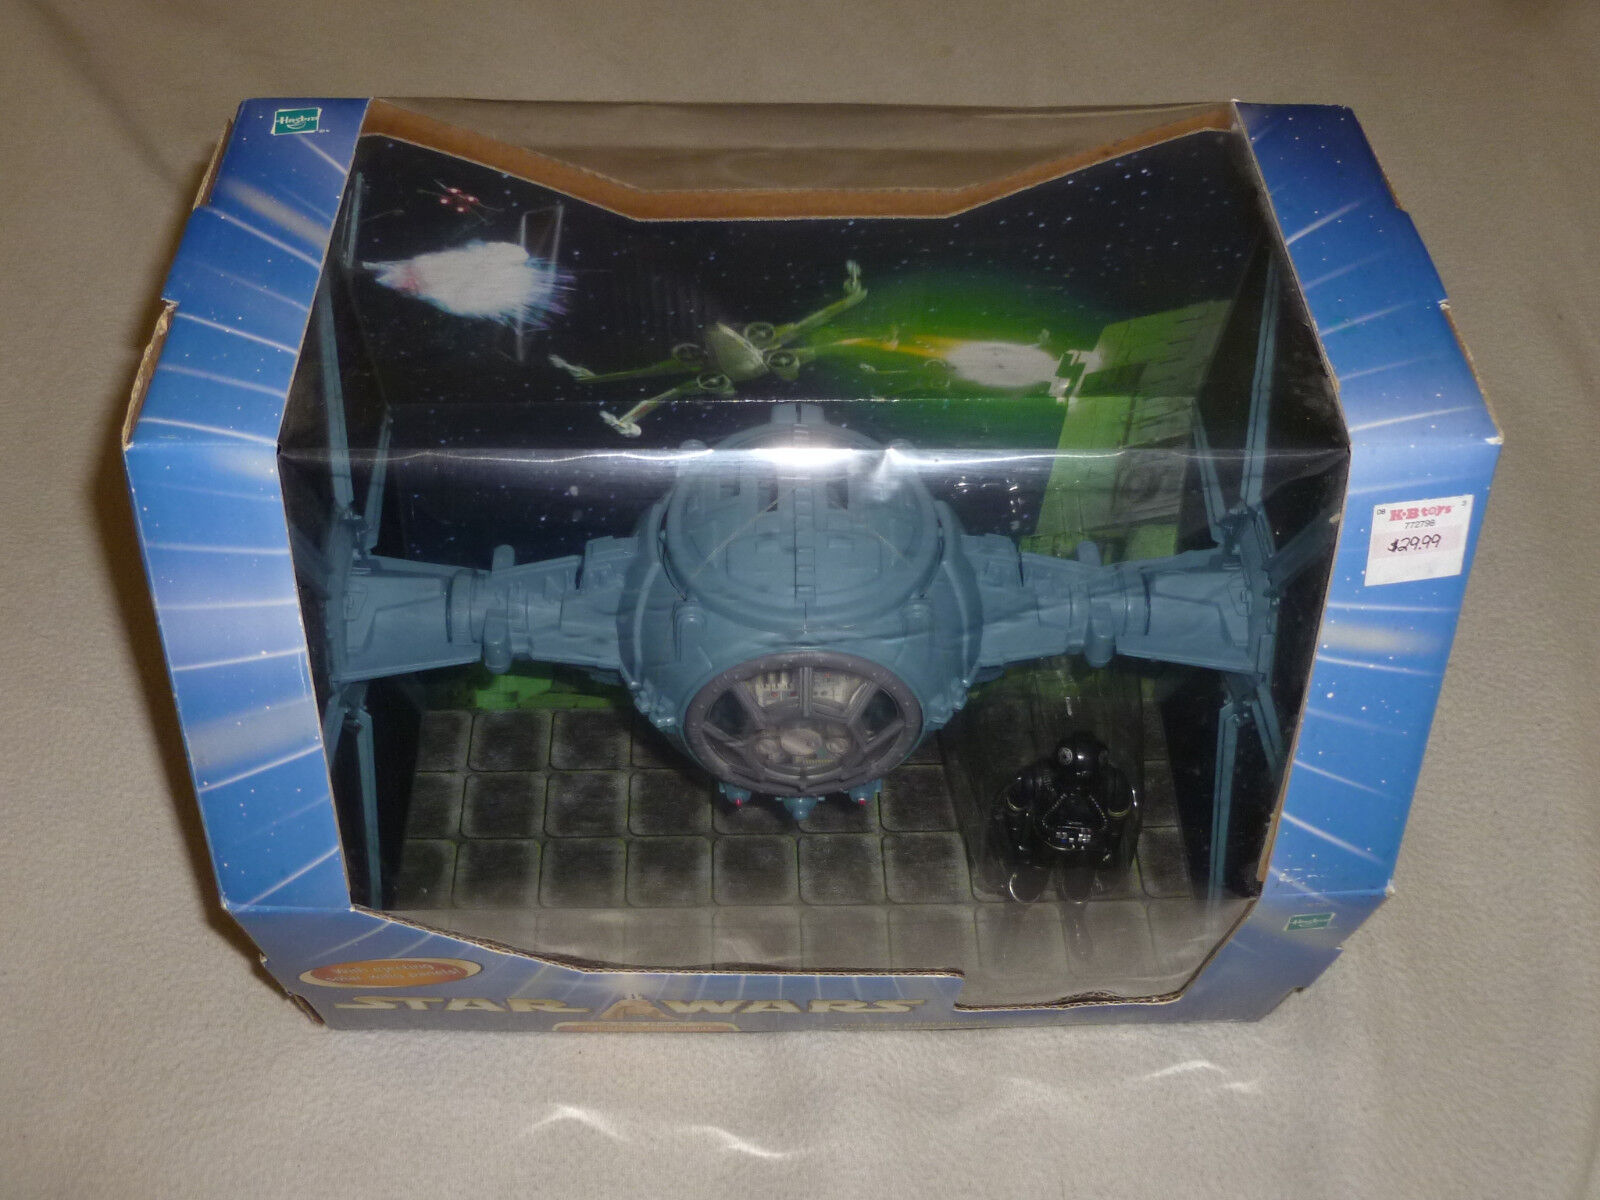 NEW IN BOX STAR WARS A NEW HOPE IMPERIAL DOGFIGHT TIE FIGHTER FIGURE HASBRO 2003